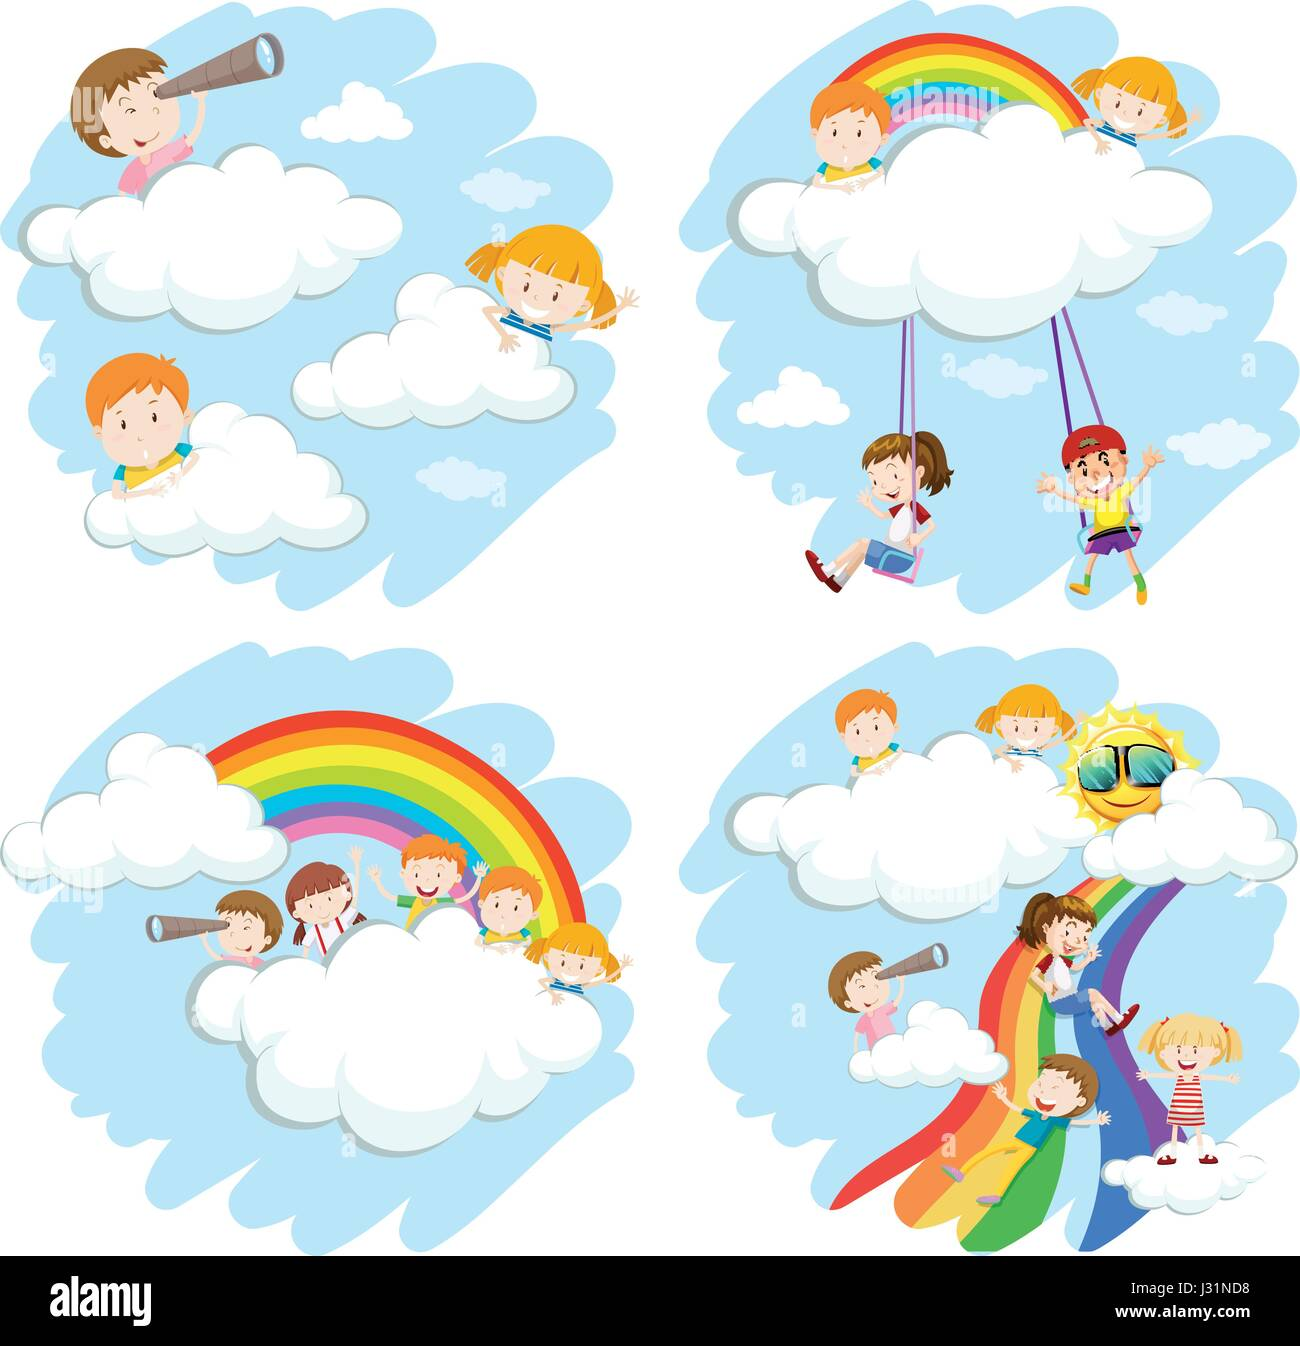 Happy children on fluffy clouds and rainbow illustration - Stock Image